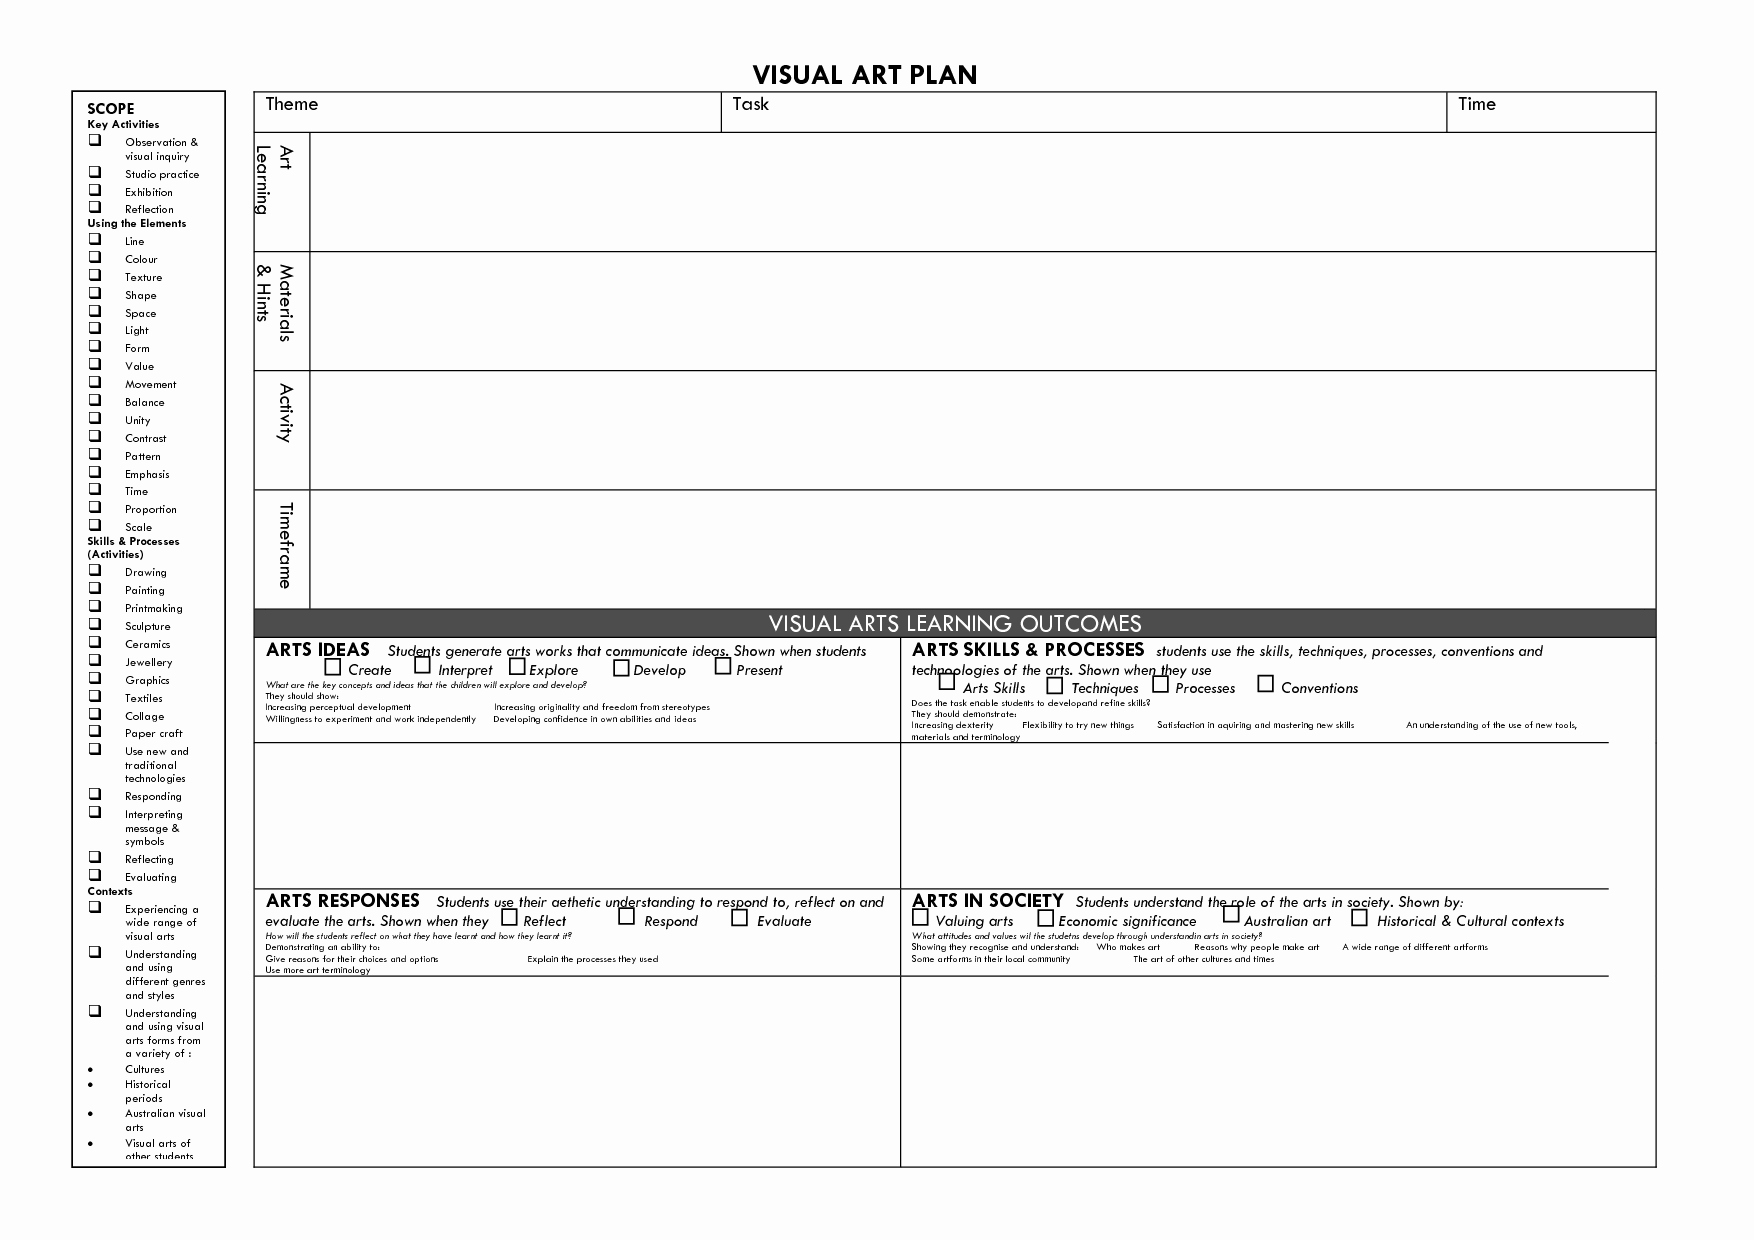 Elementary Art Lesson Plan Template Awesome Visual Arts Lesson Plan Template Visual Art Plan